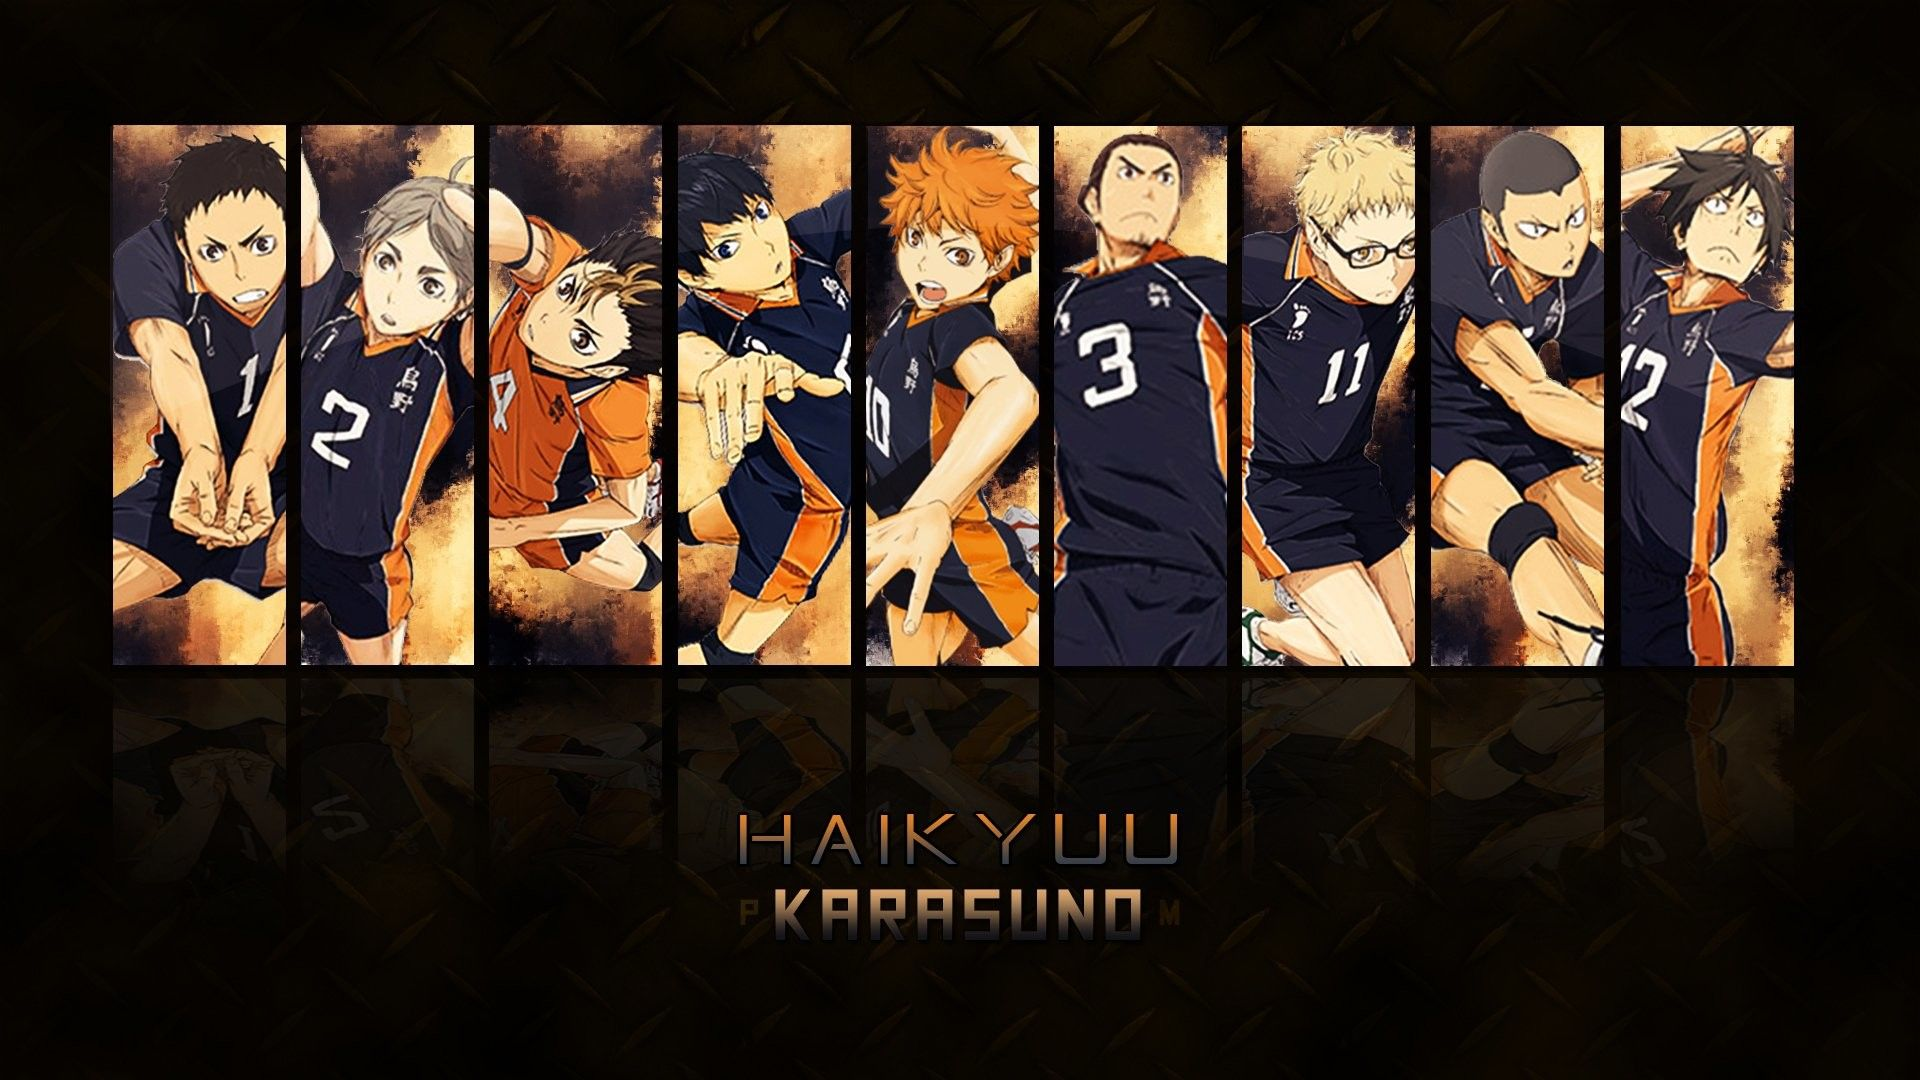 1920x1080 Wallpaper Haikyuu Wallpaper Haikyuu Haikyuu Anime